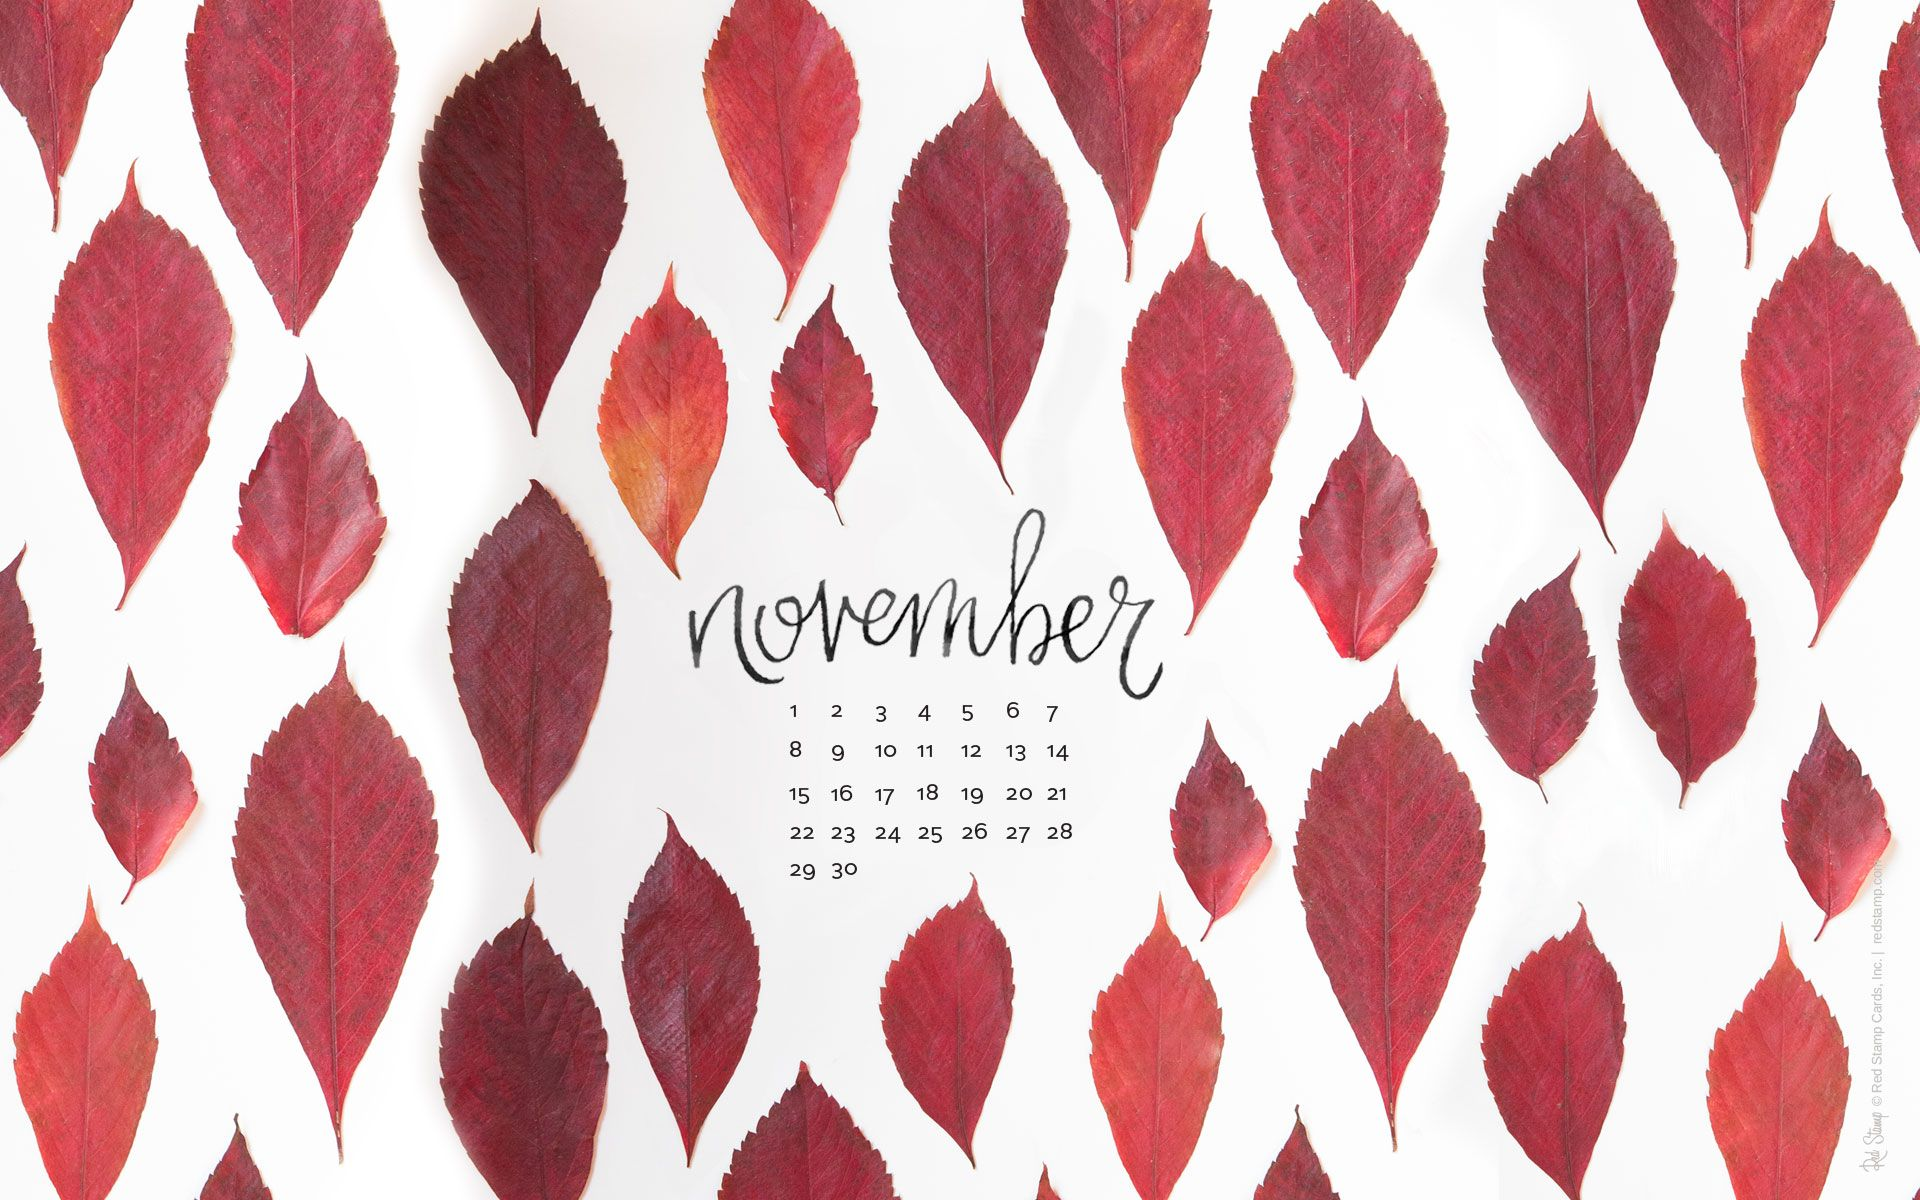 Computerkleider - Free Desktop Wallpaper im November | November ...